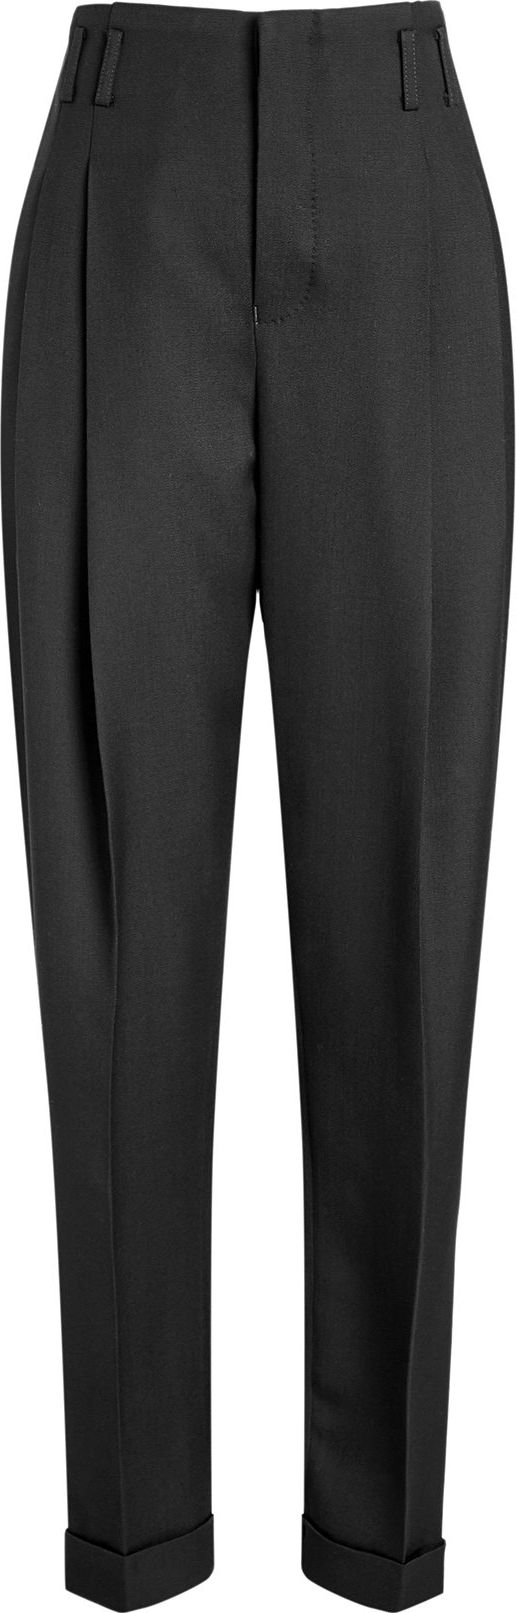 Haider Ackermann - Tapered Fleece Wool Pants